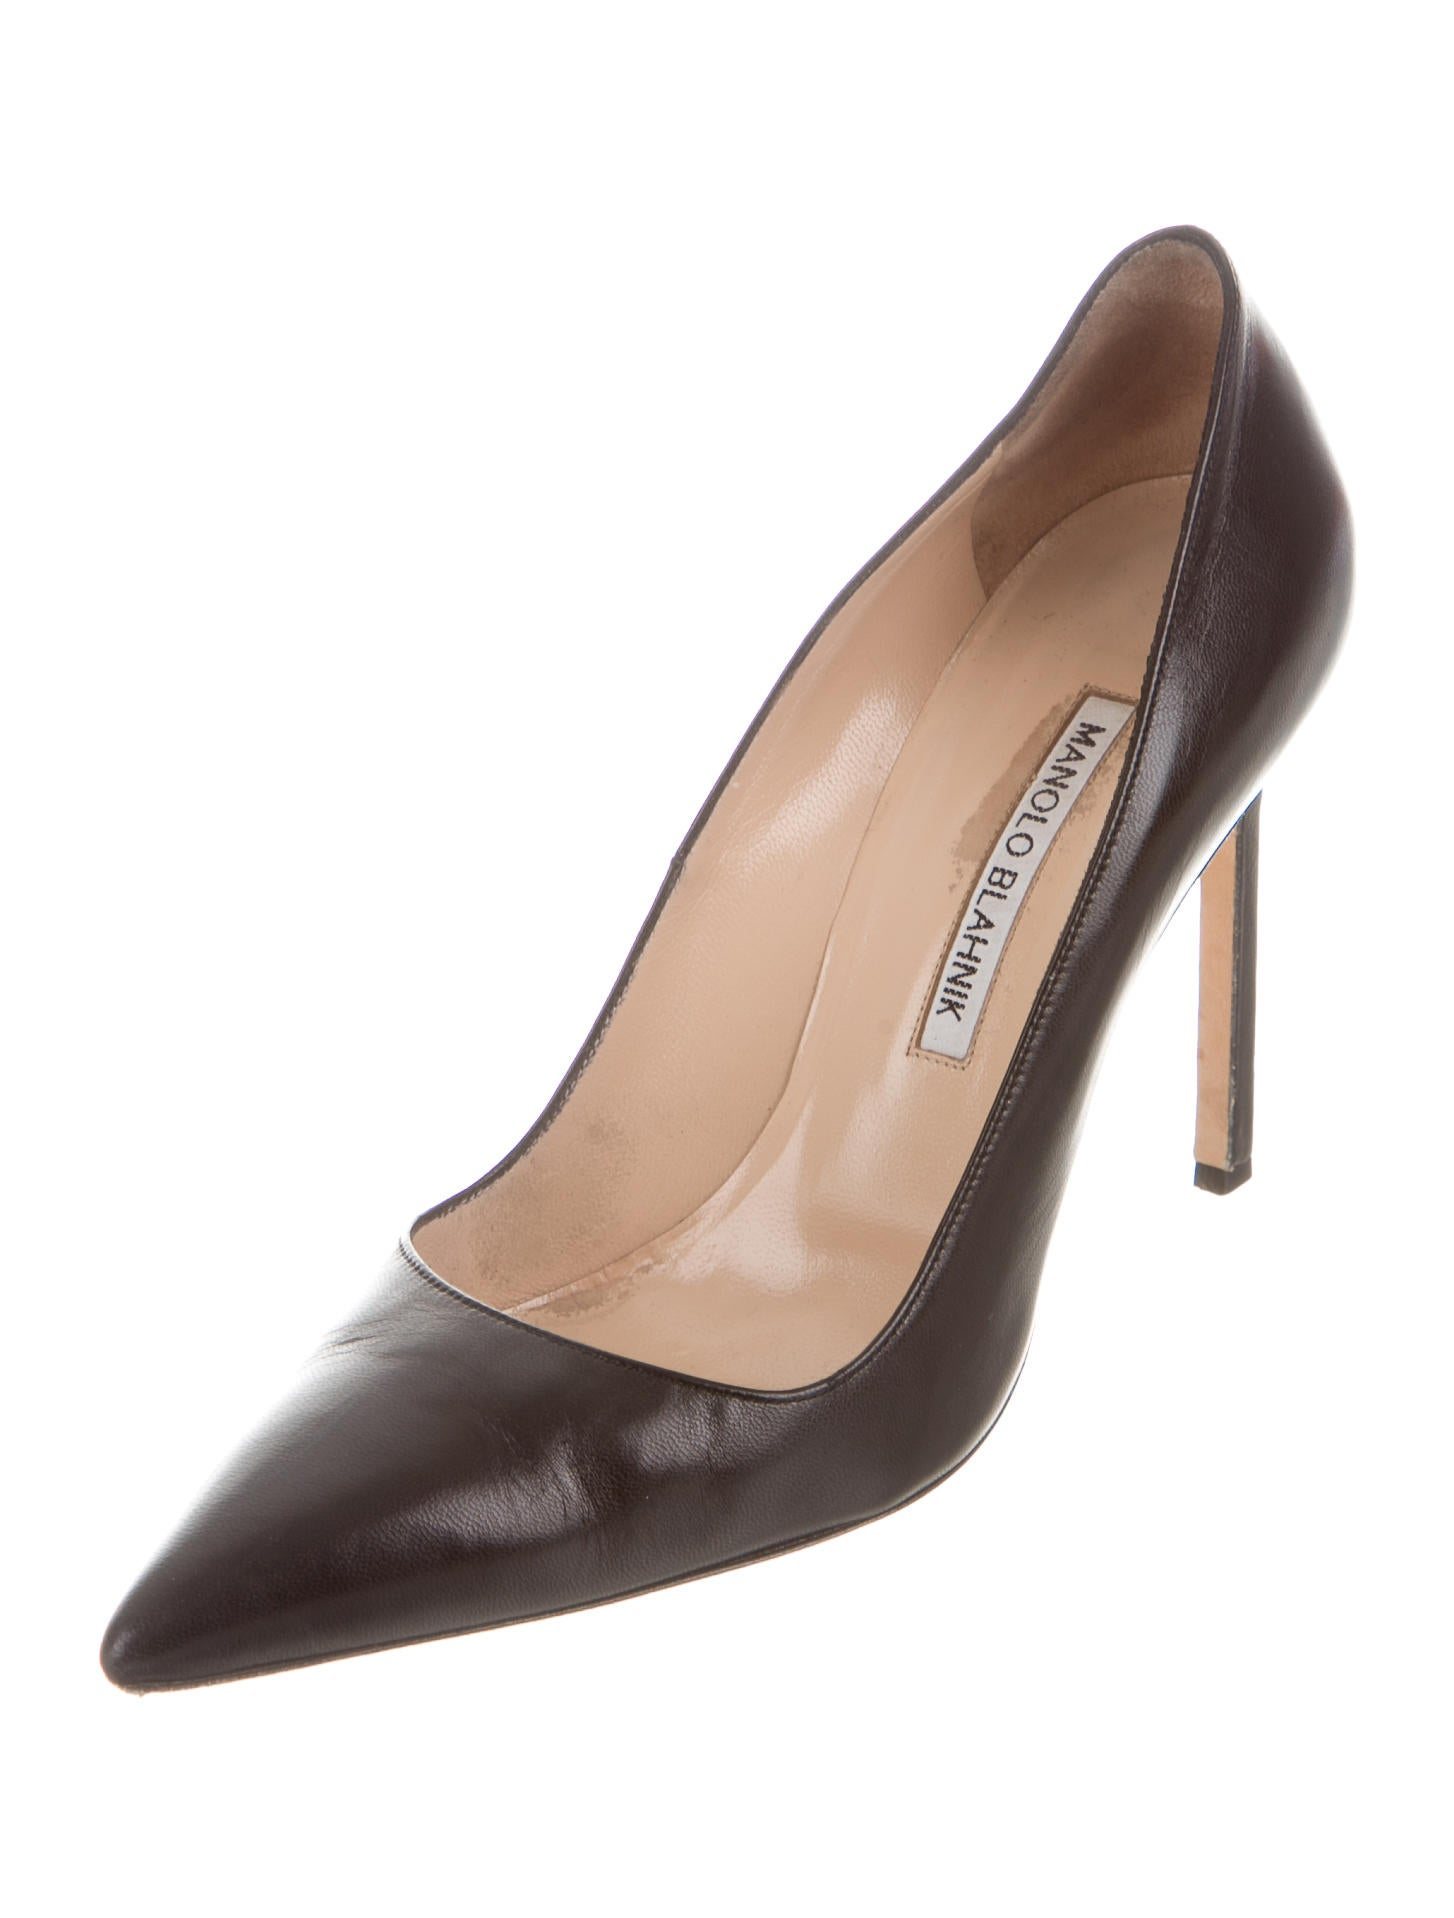 Manolo blahnik leather bb pumps shoes moo60444 the for Shoes by manolo blahnik